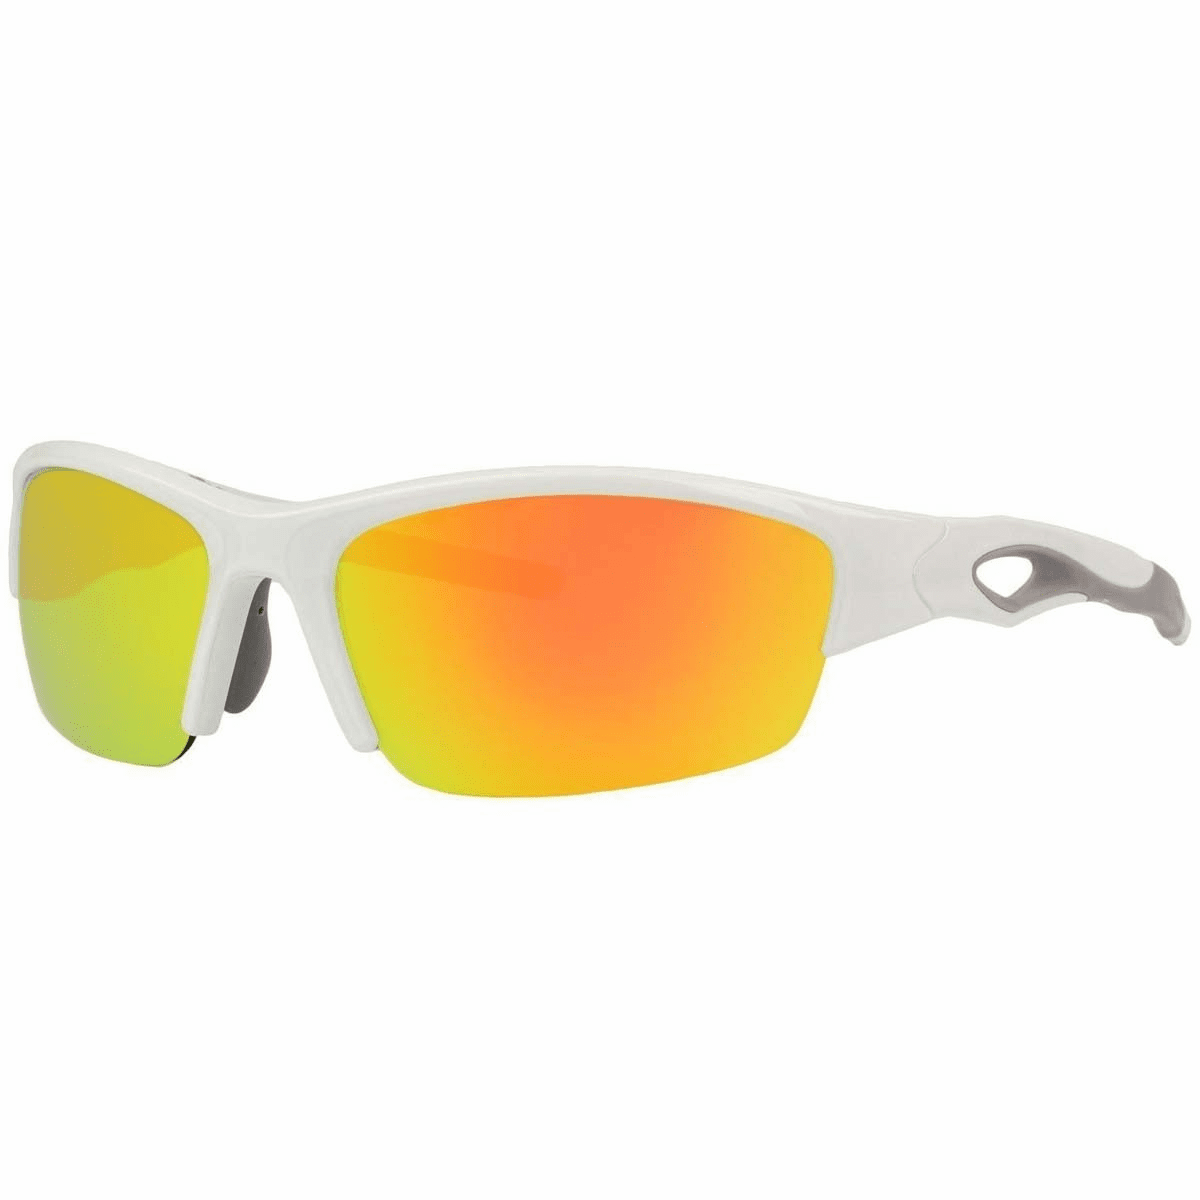 Rawlings 32 White Adult Sunglasses<br>ONLY 2 LEFT!